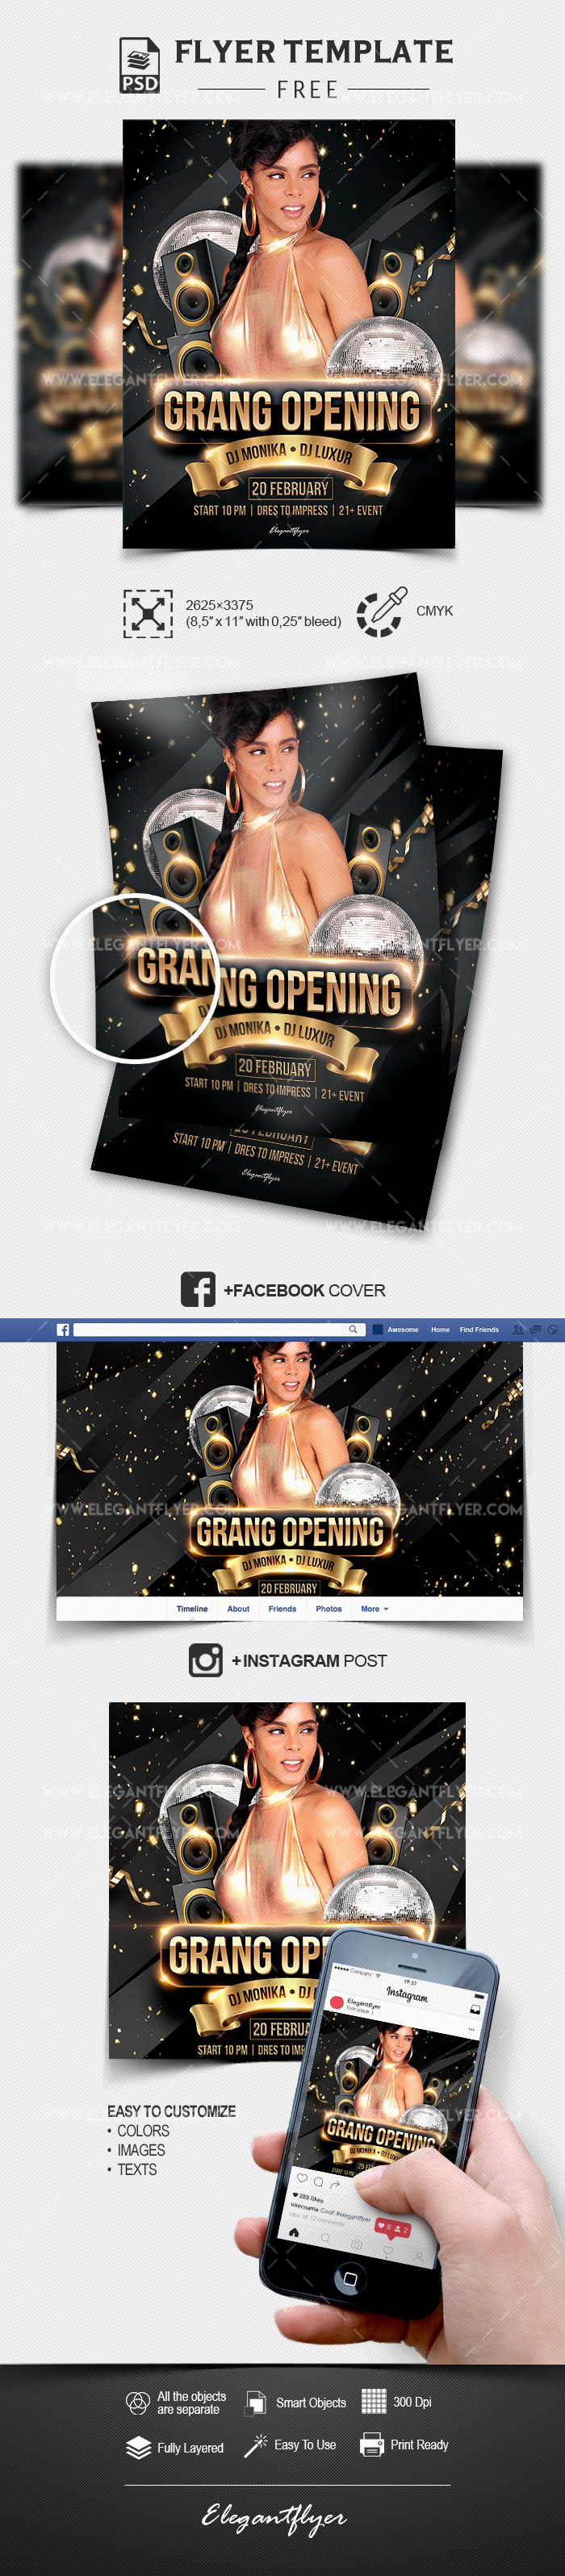 Grand Opening – Free PSD Flyer Template + Facebook Cover + Instagram Post